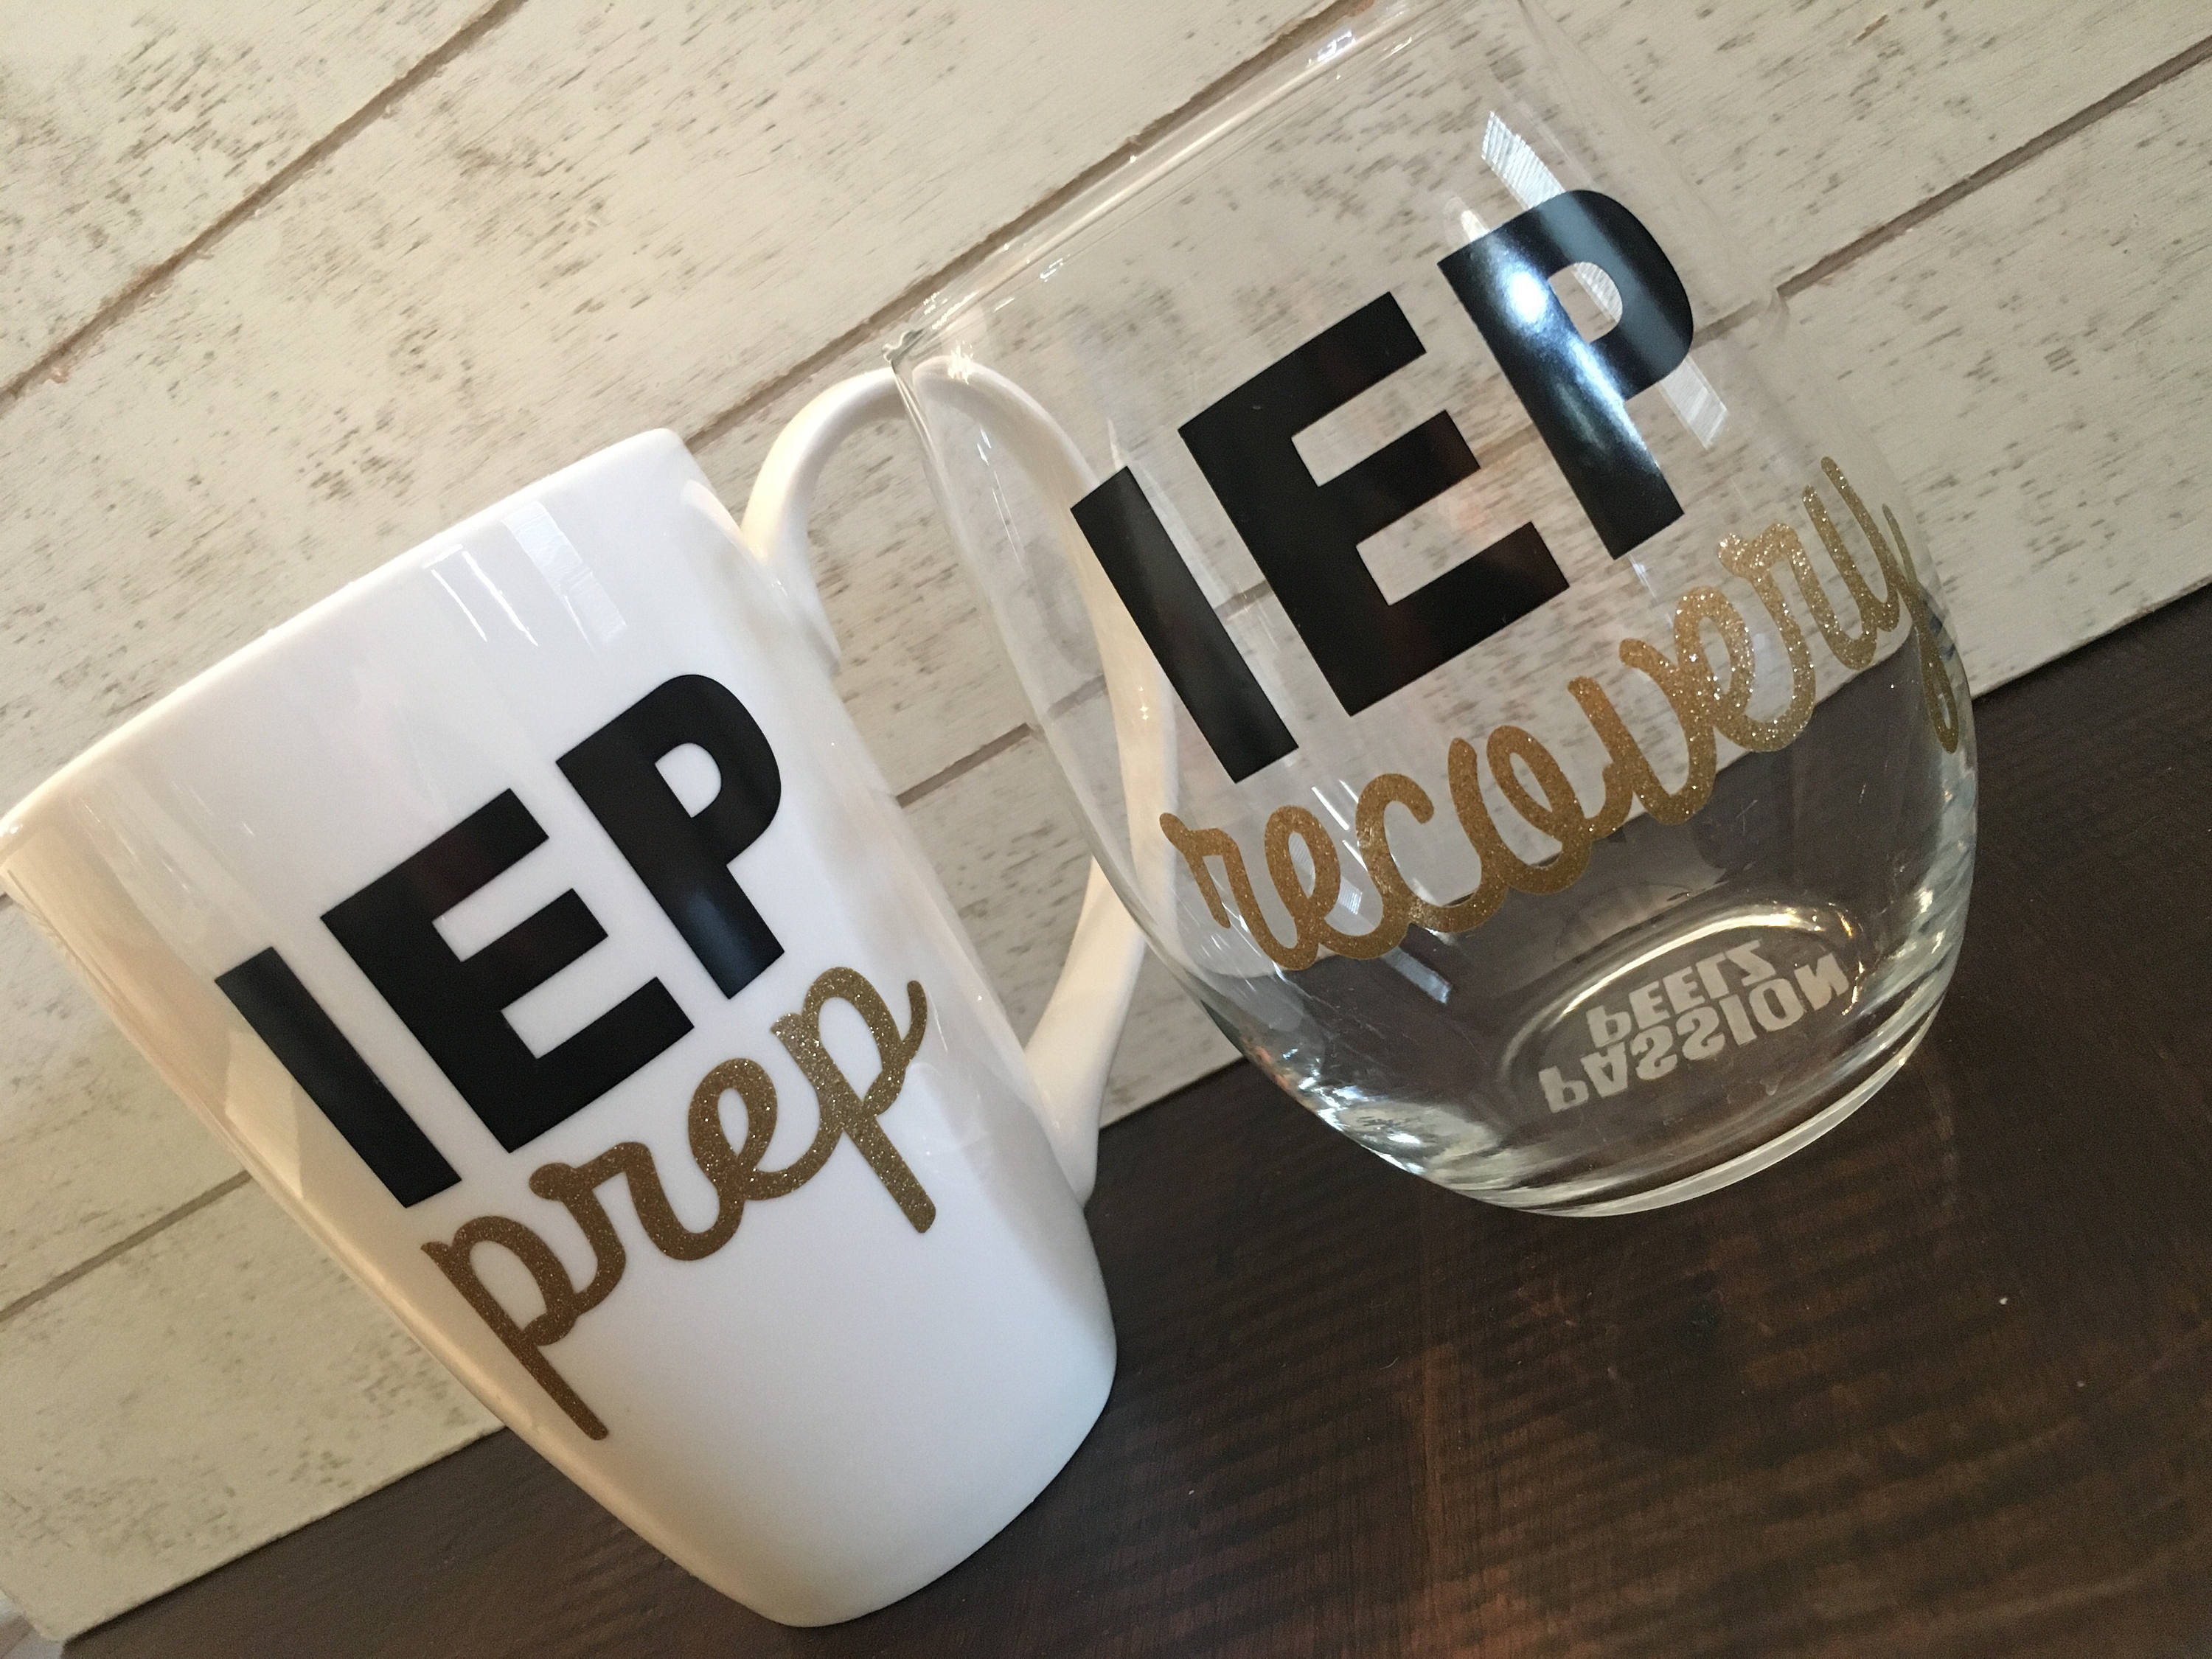 iep 504 prep and recovery mug and wine glass education